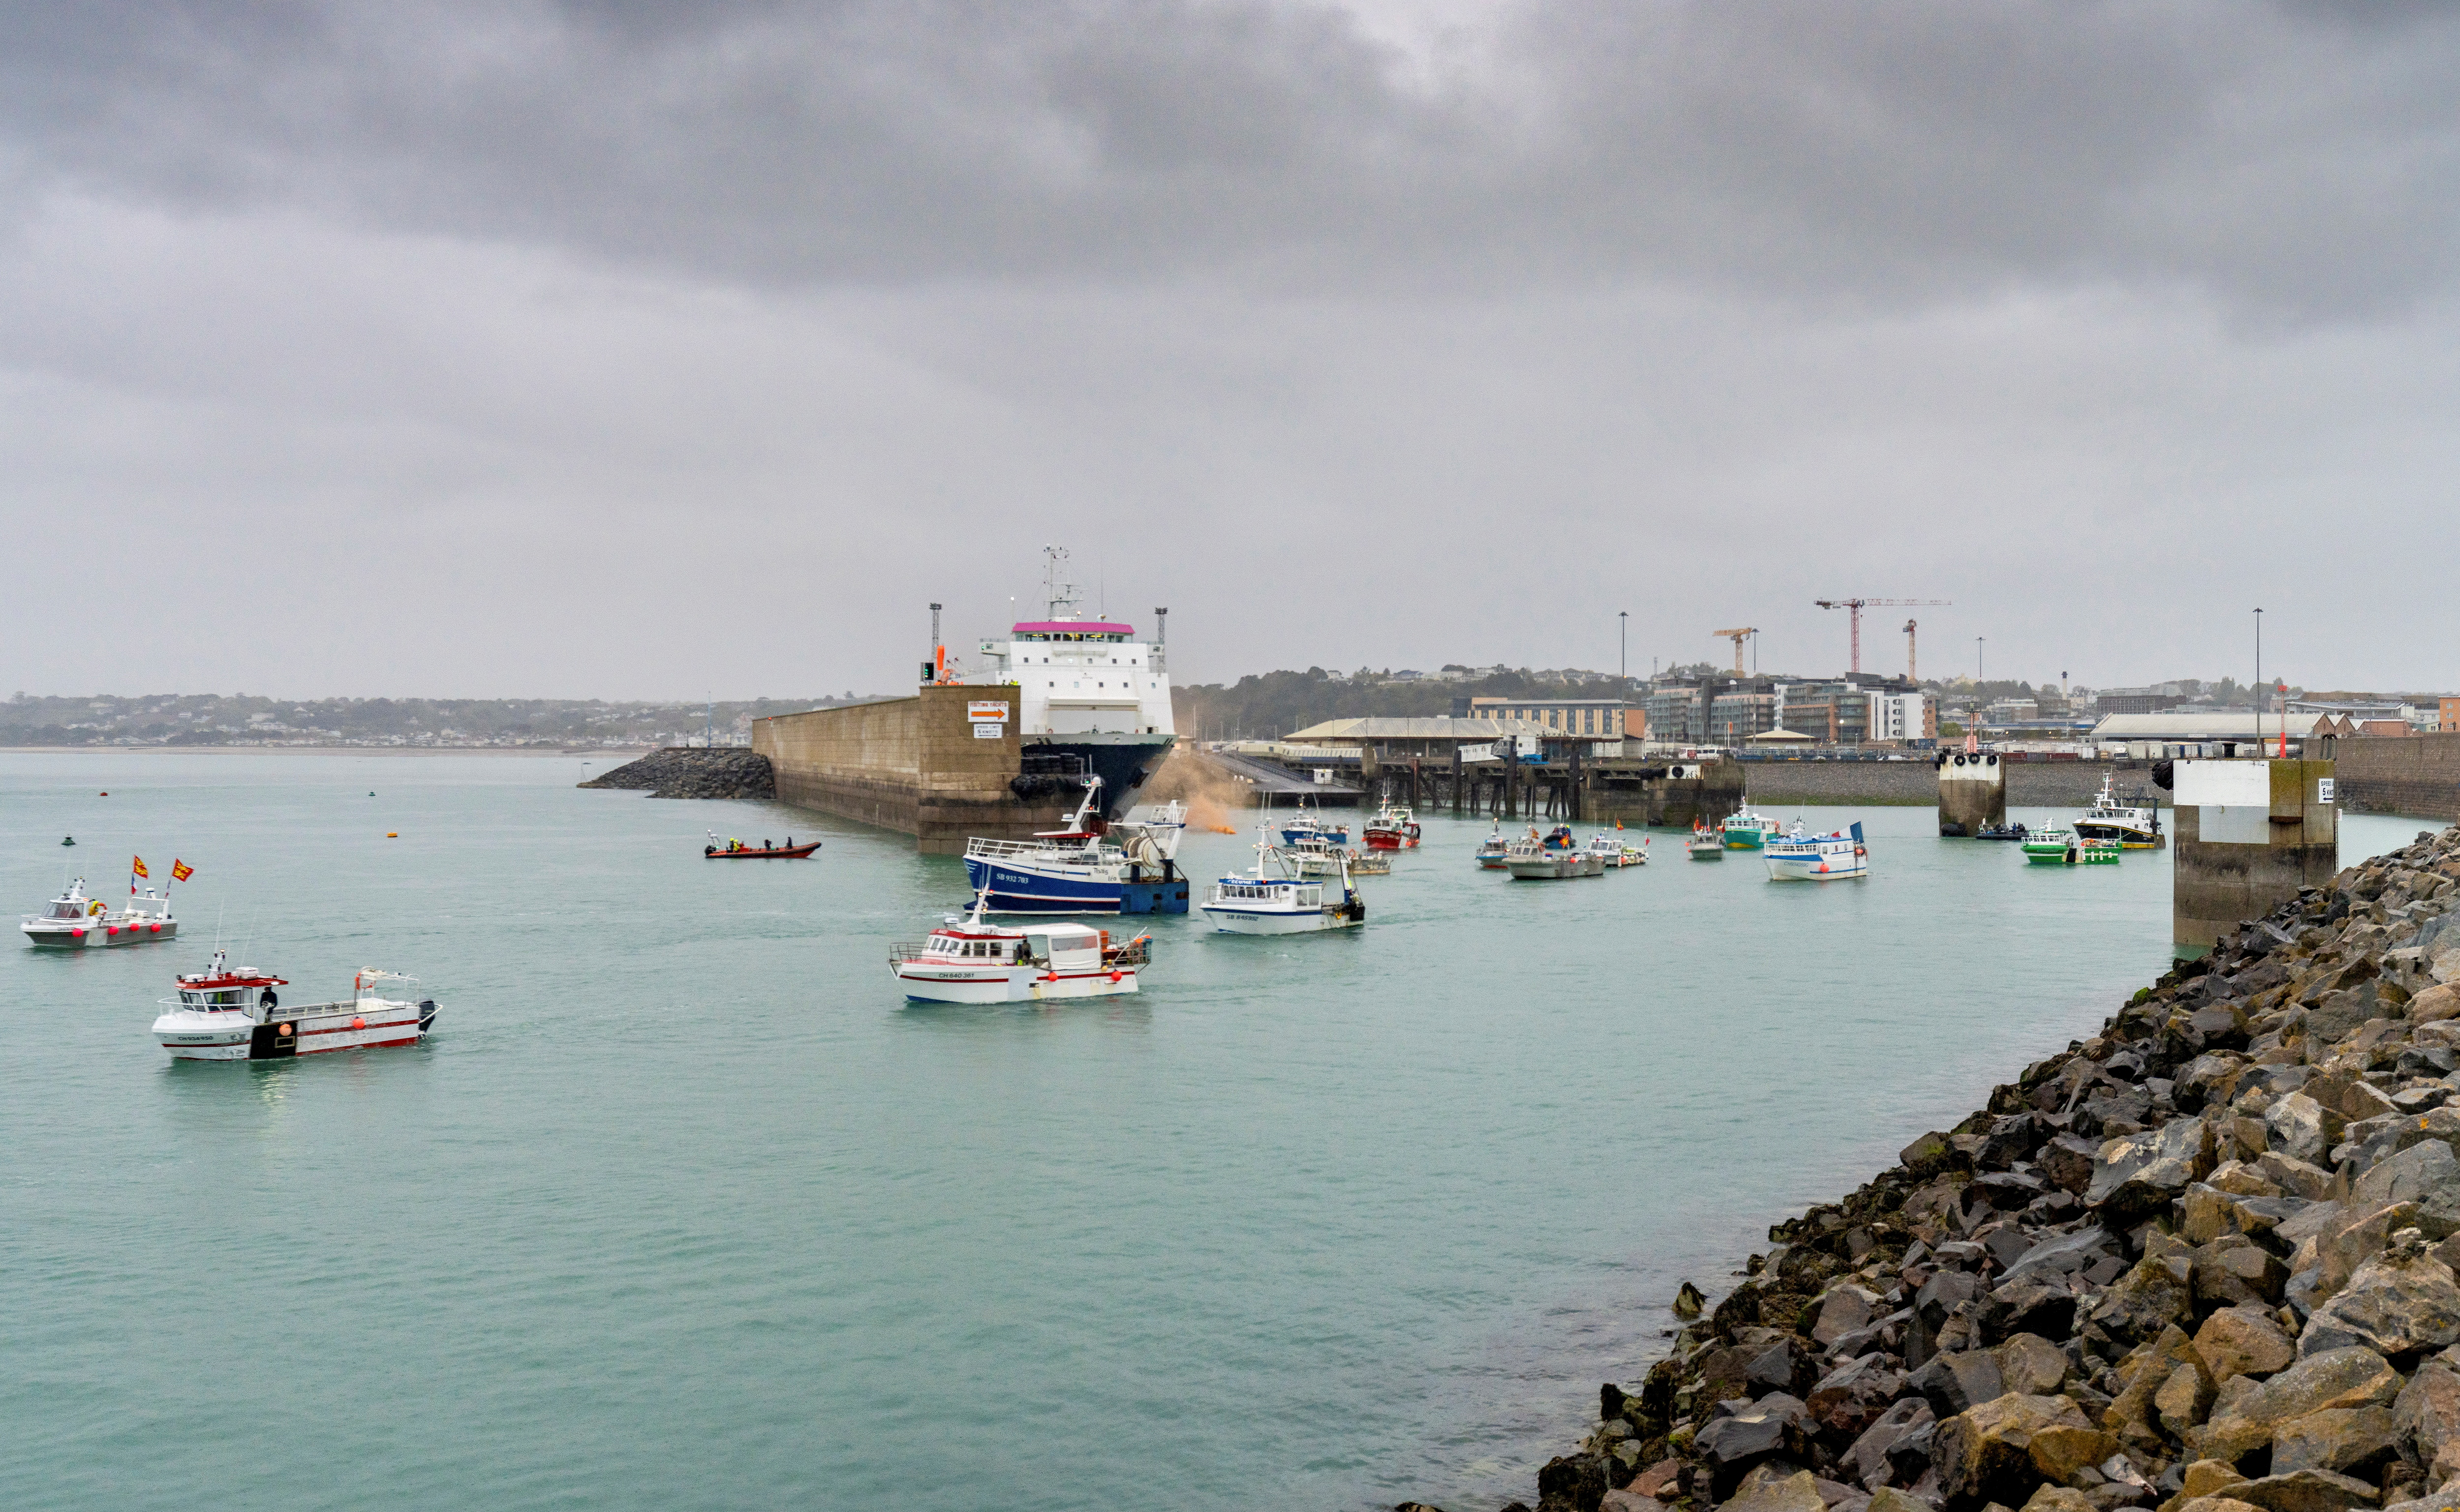 French fishing fleet is seen at the entrance to the harbour in St Helier, Jersey, May 6, 2021. Marc Le Cornu/via REUTERS